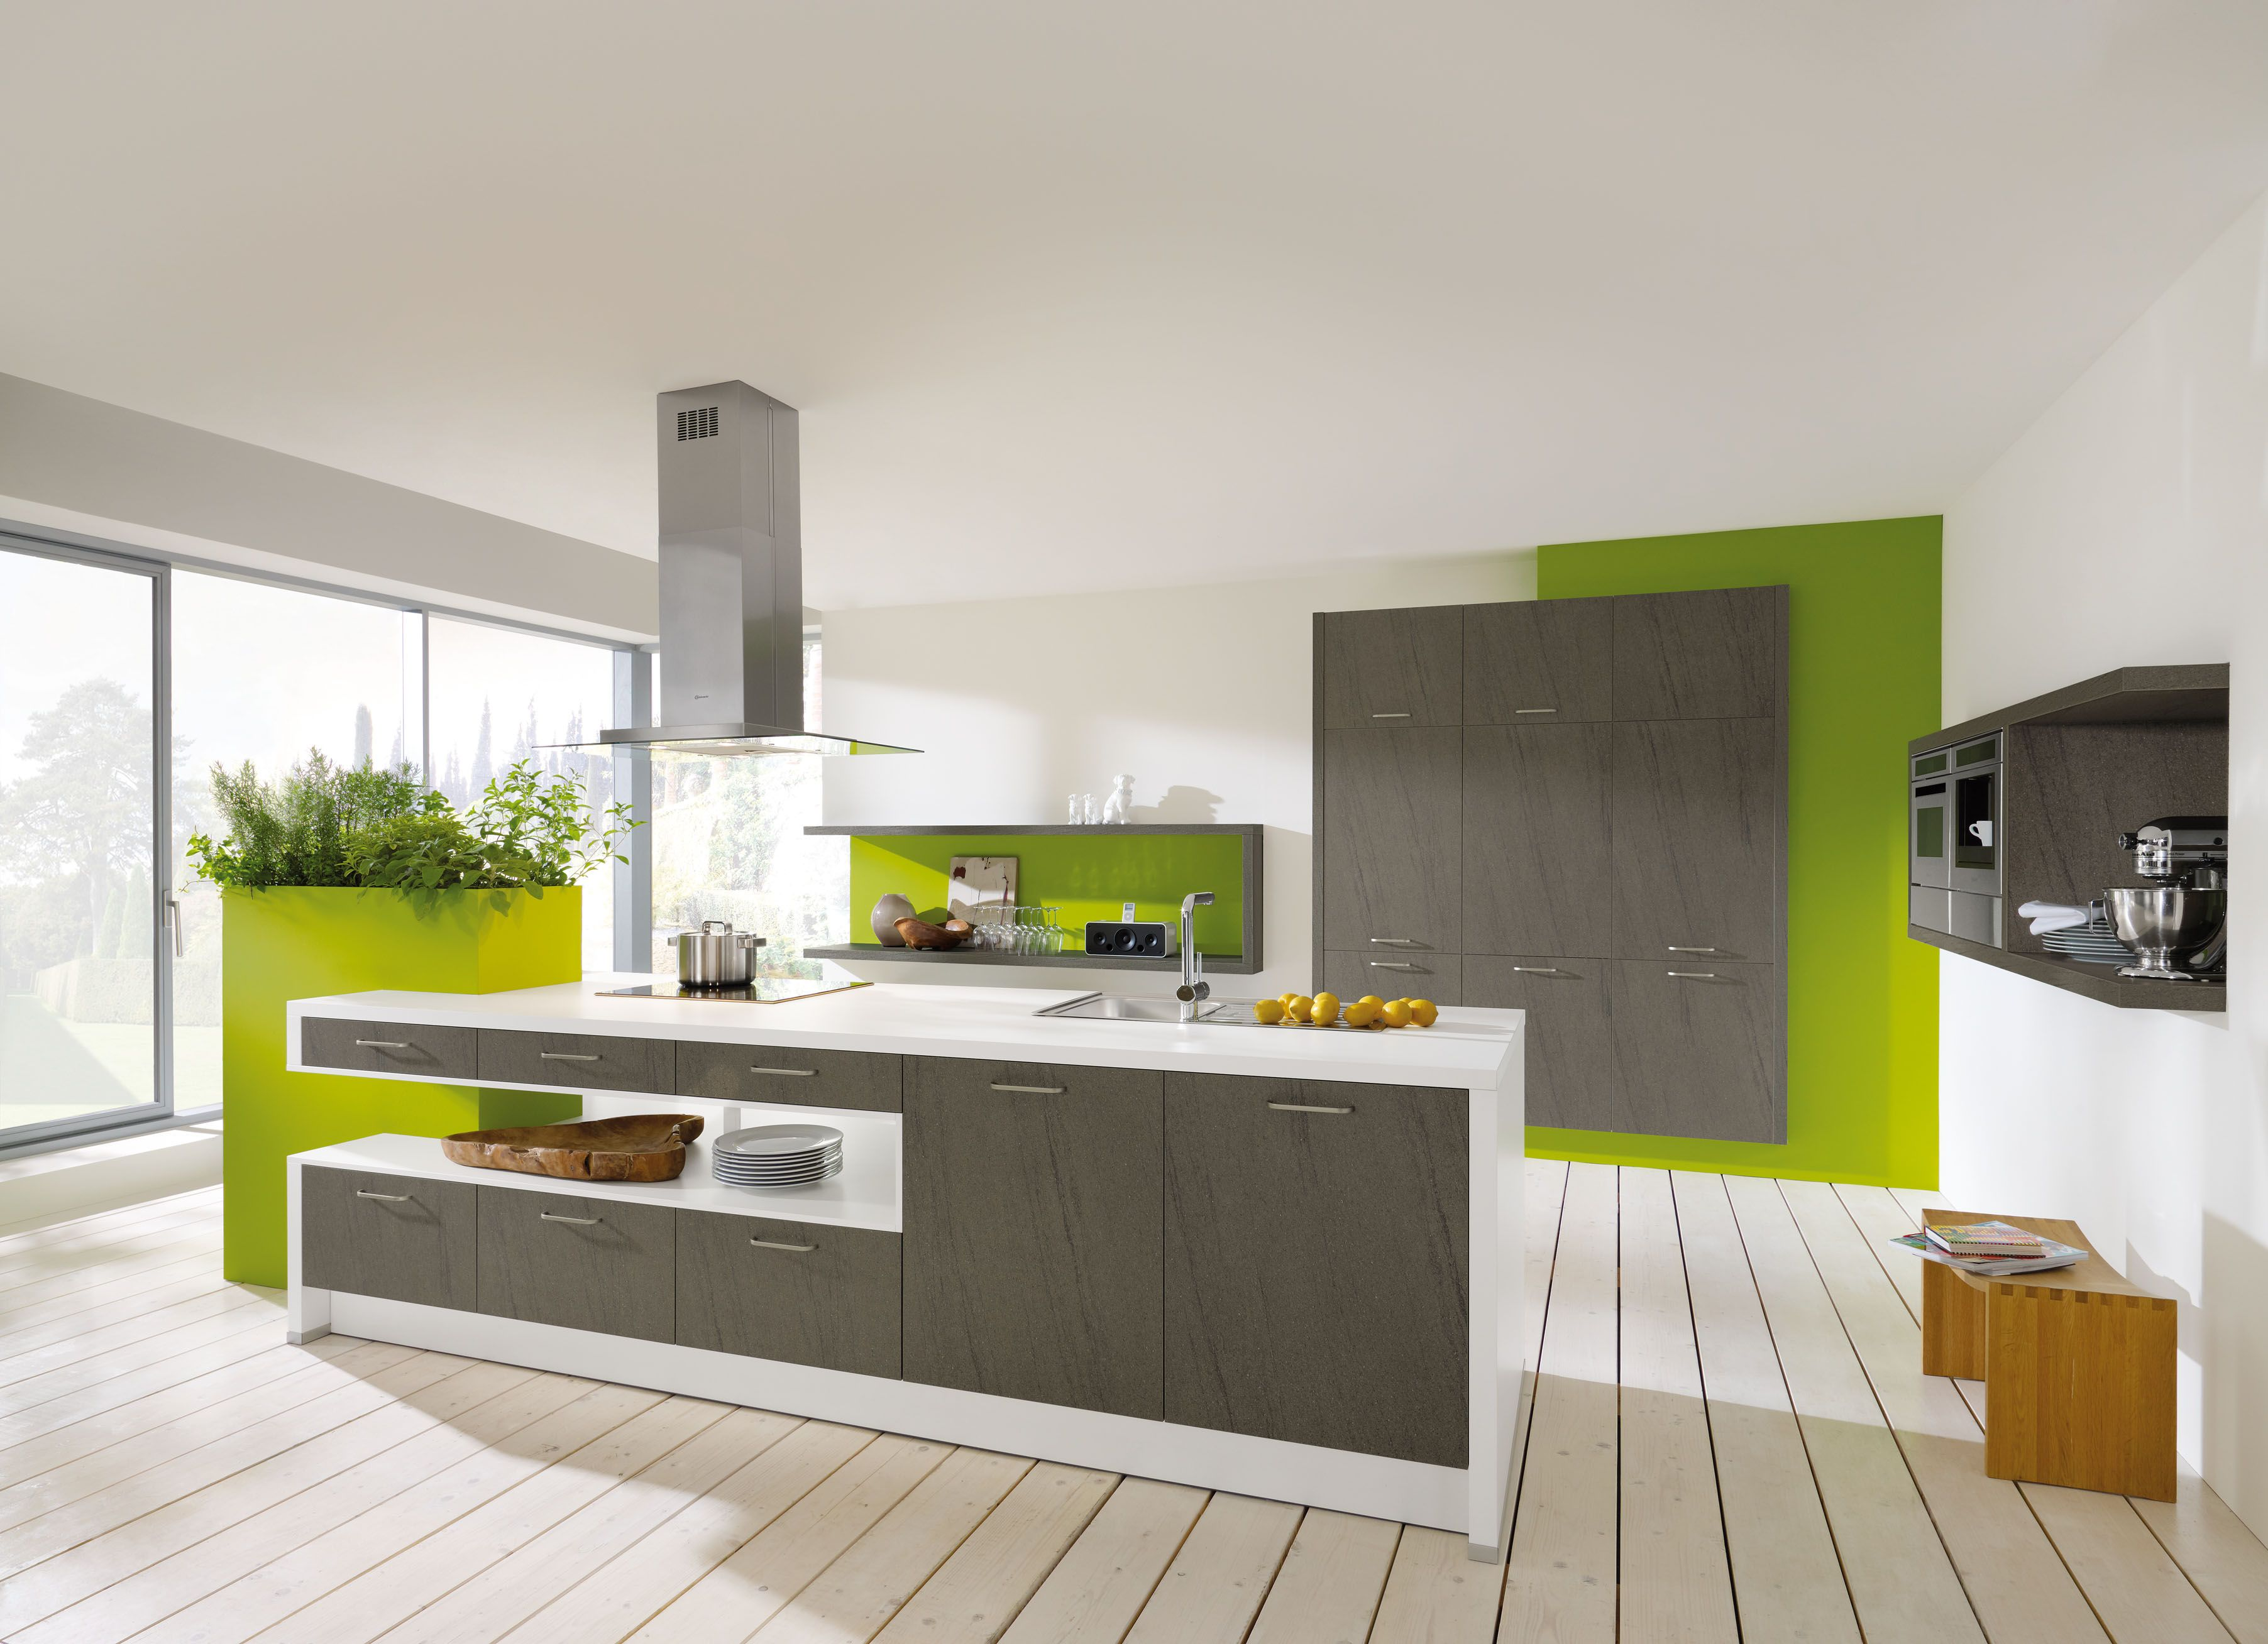 New Kitchen Ideas 2015 Magnificent Contemporary Kitchen Modern Designs Ideas With White